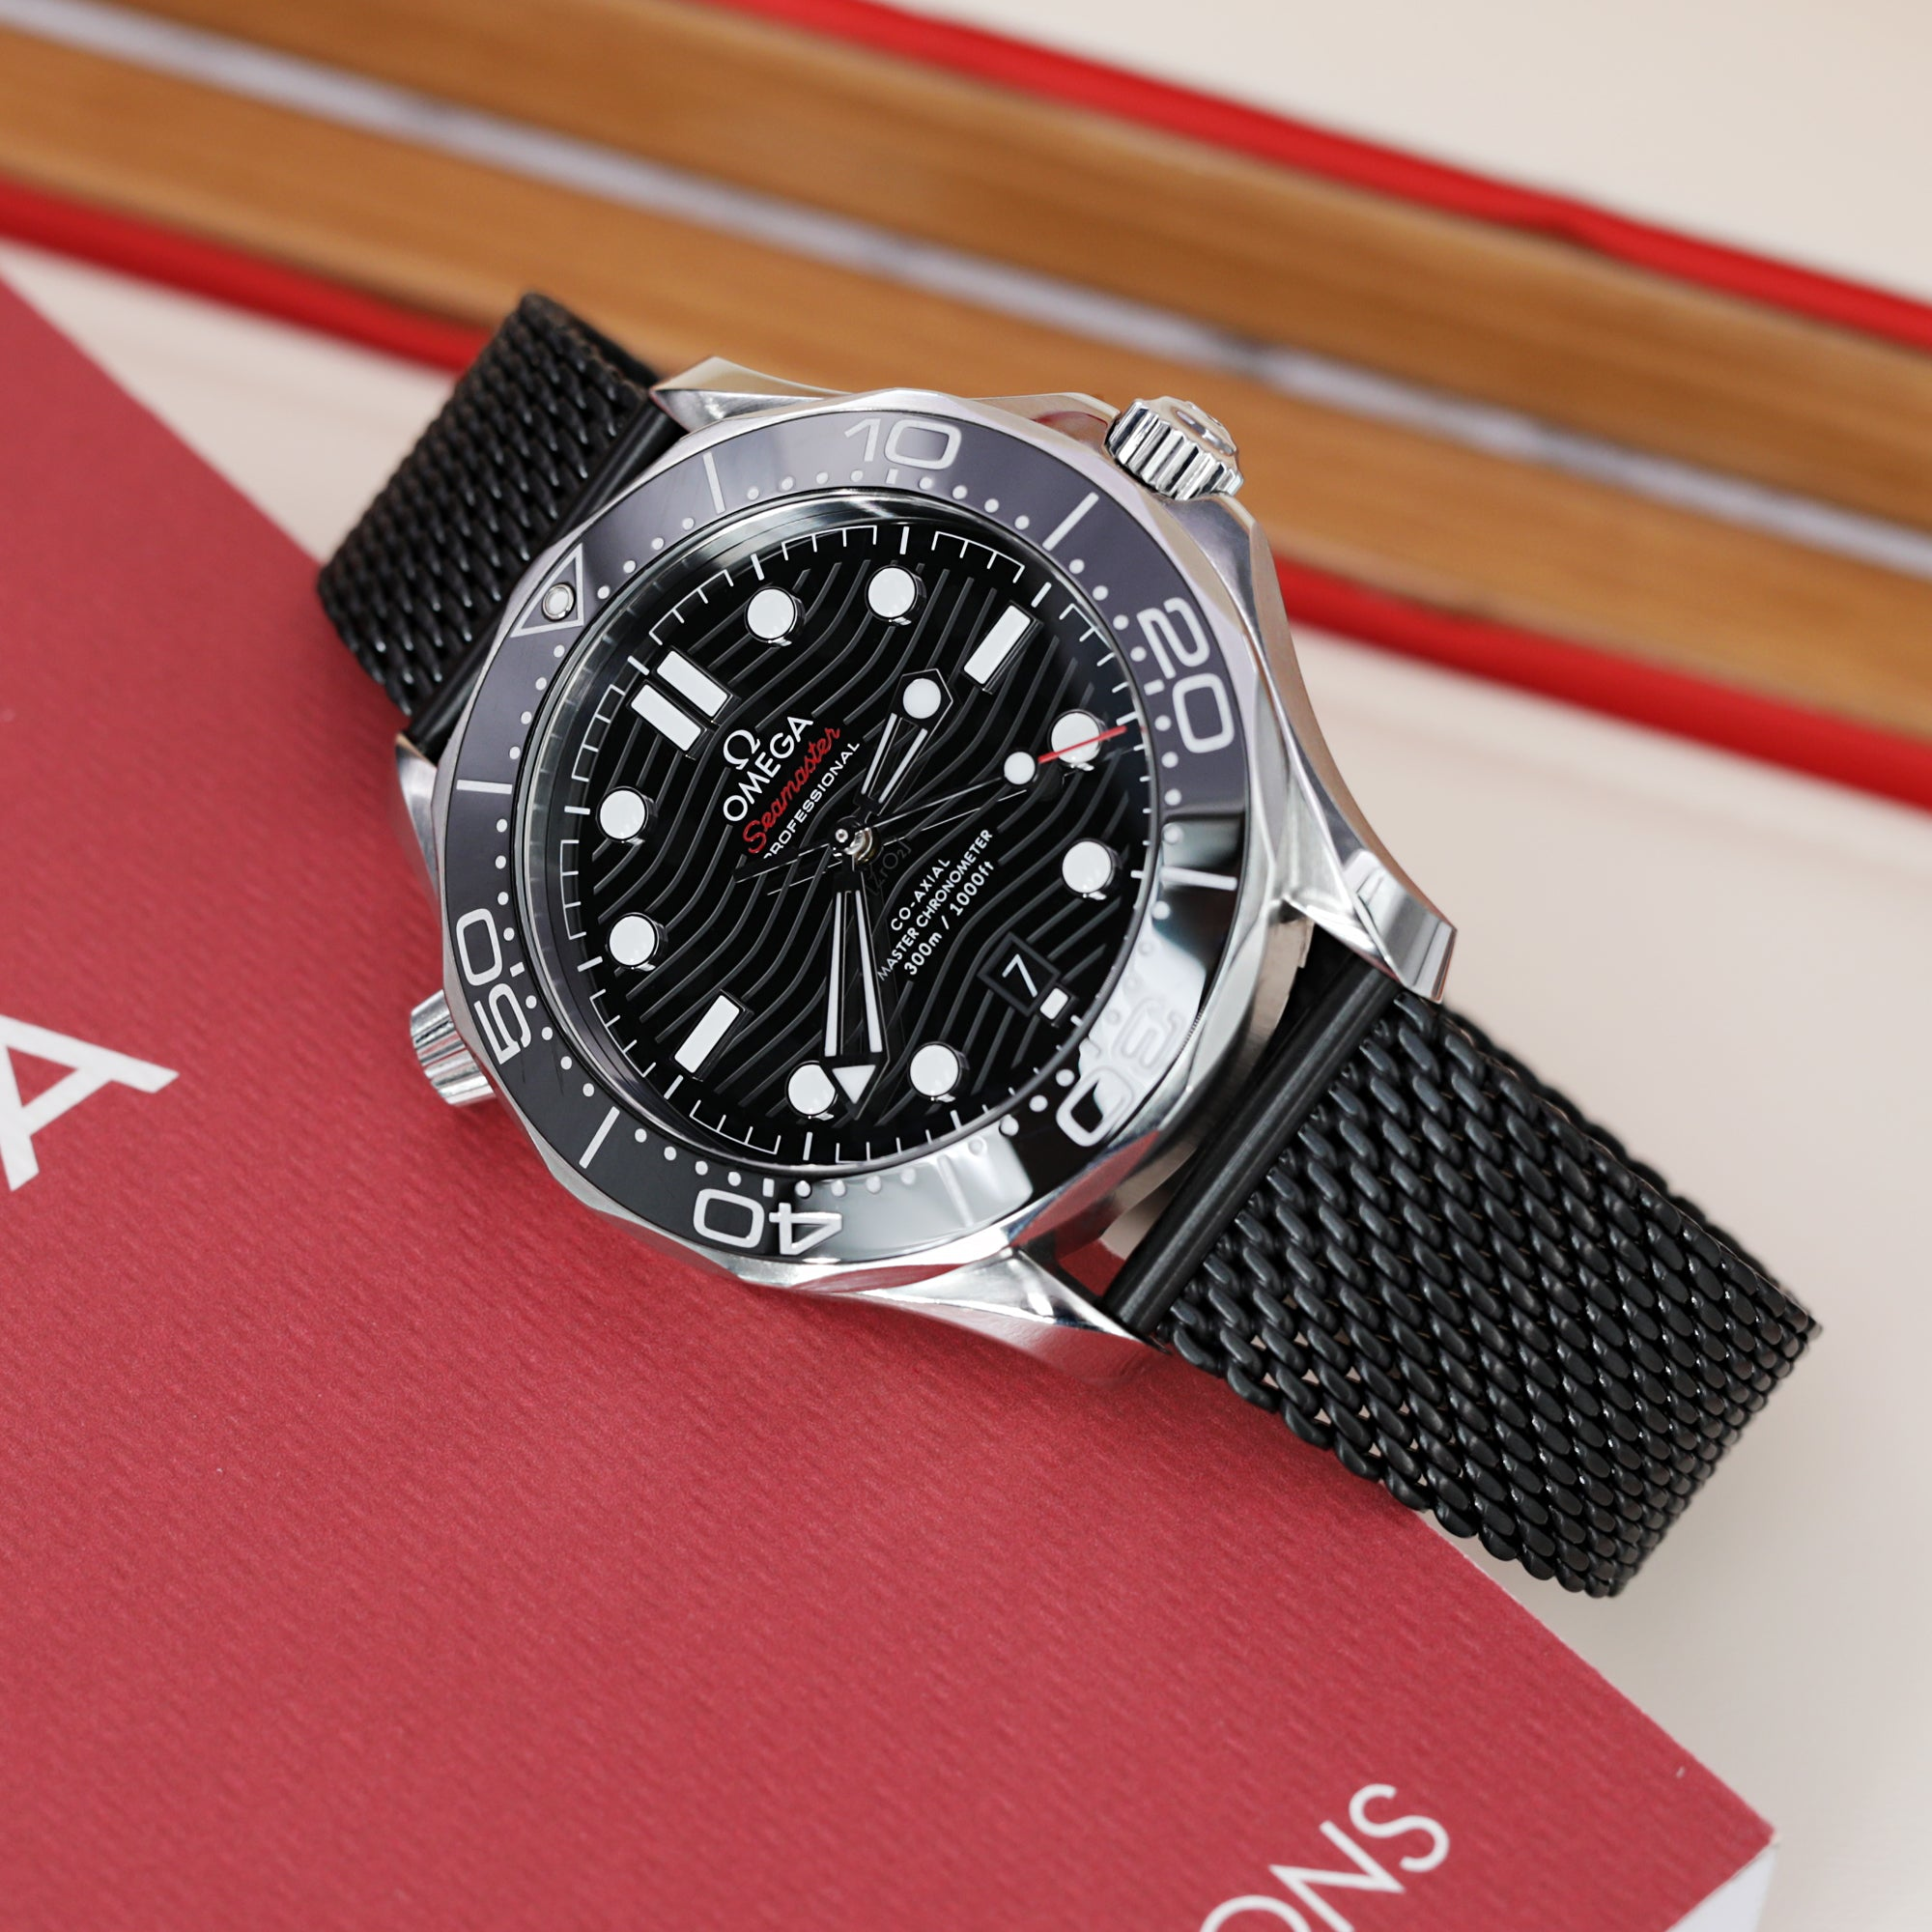 Omega Seamaster Diver 300M Co-Axial Master Chronometer 42MM Ref. 210.30.42.20.01.001